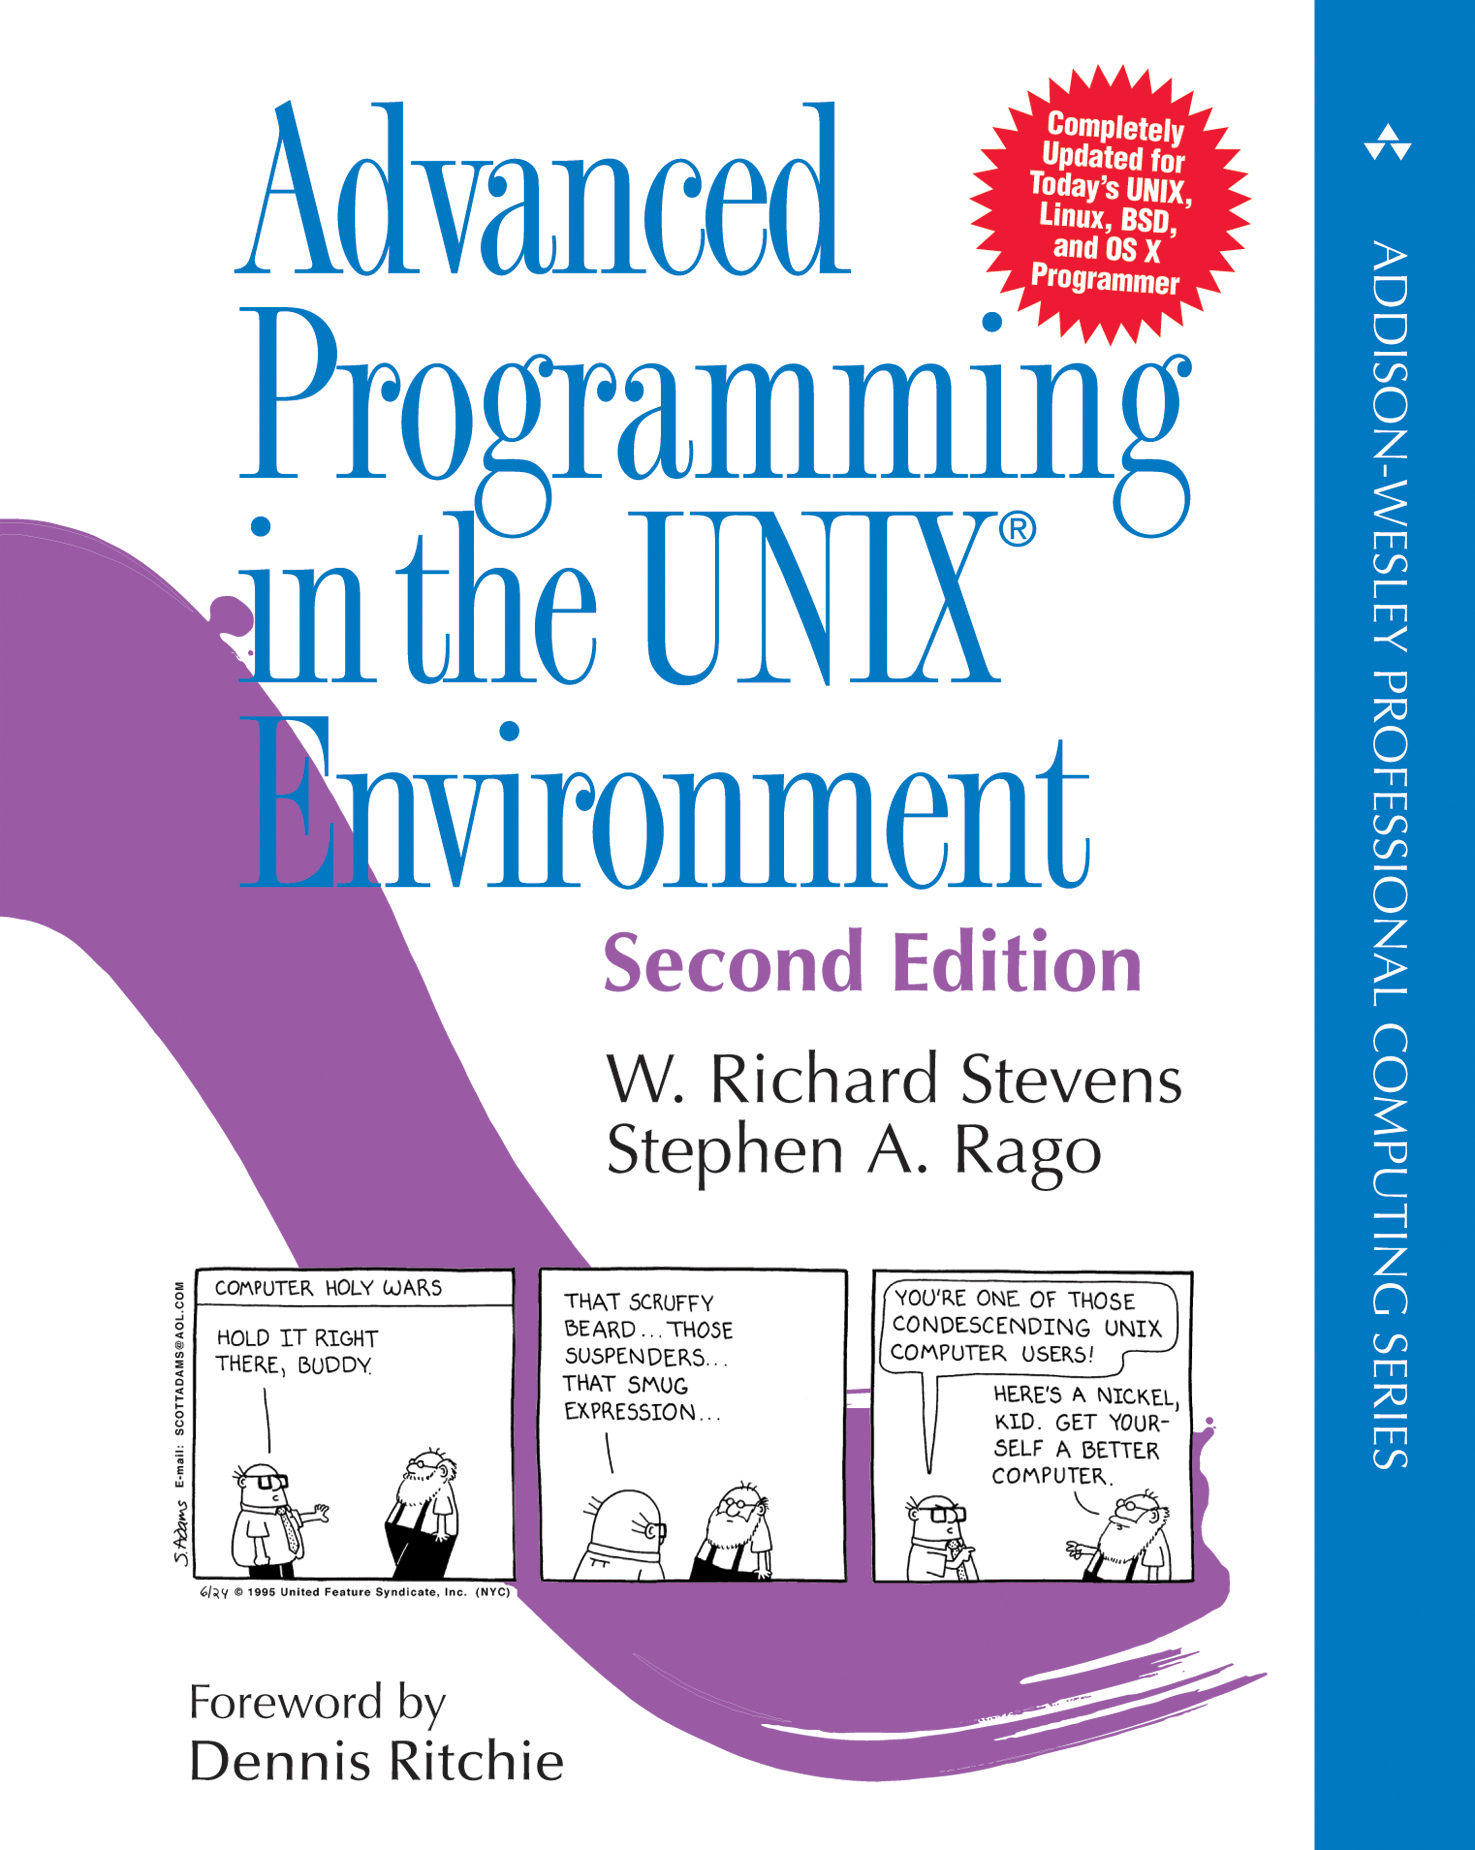 Advanced programming in the unix environment 2nd edition 2017